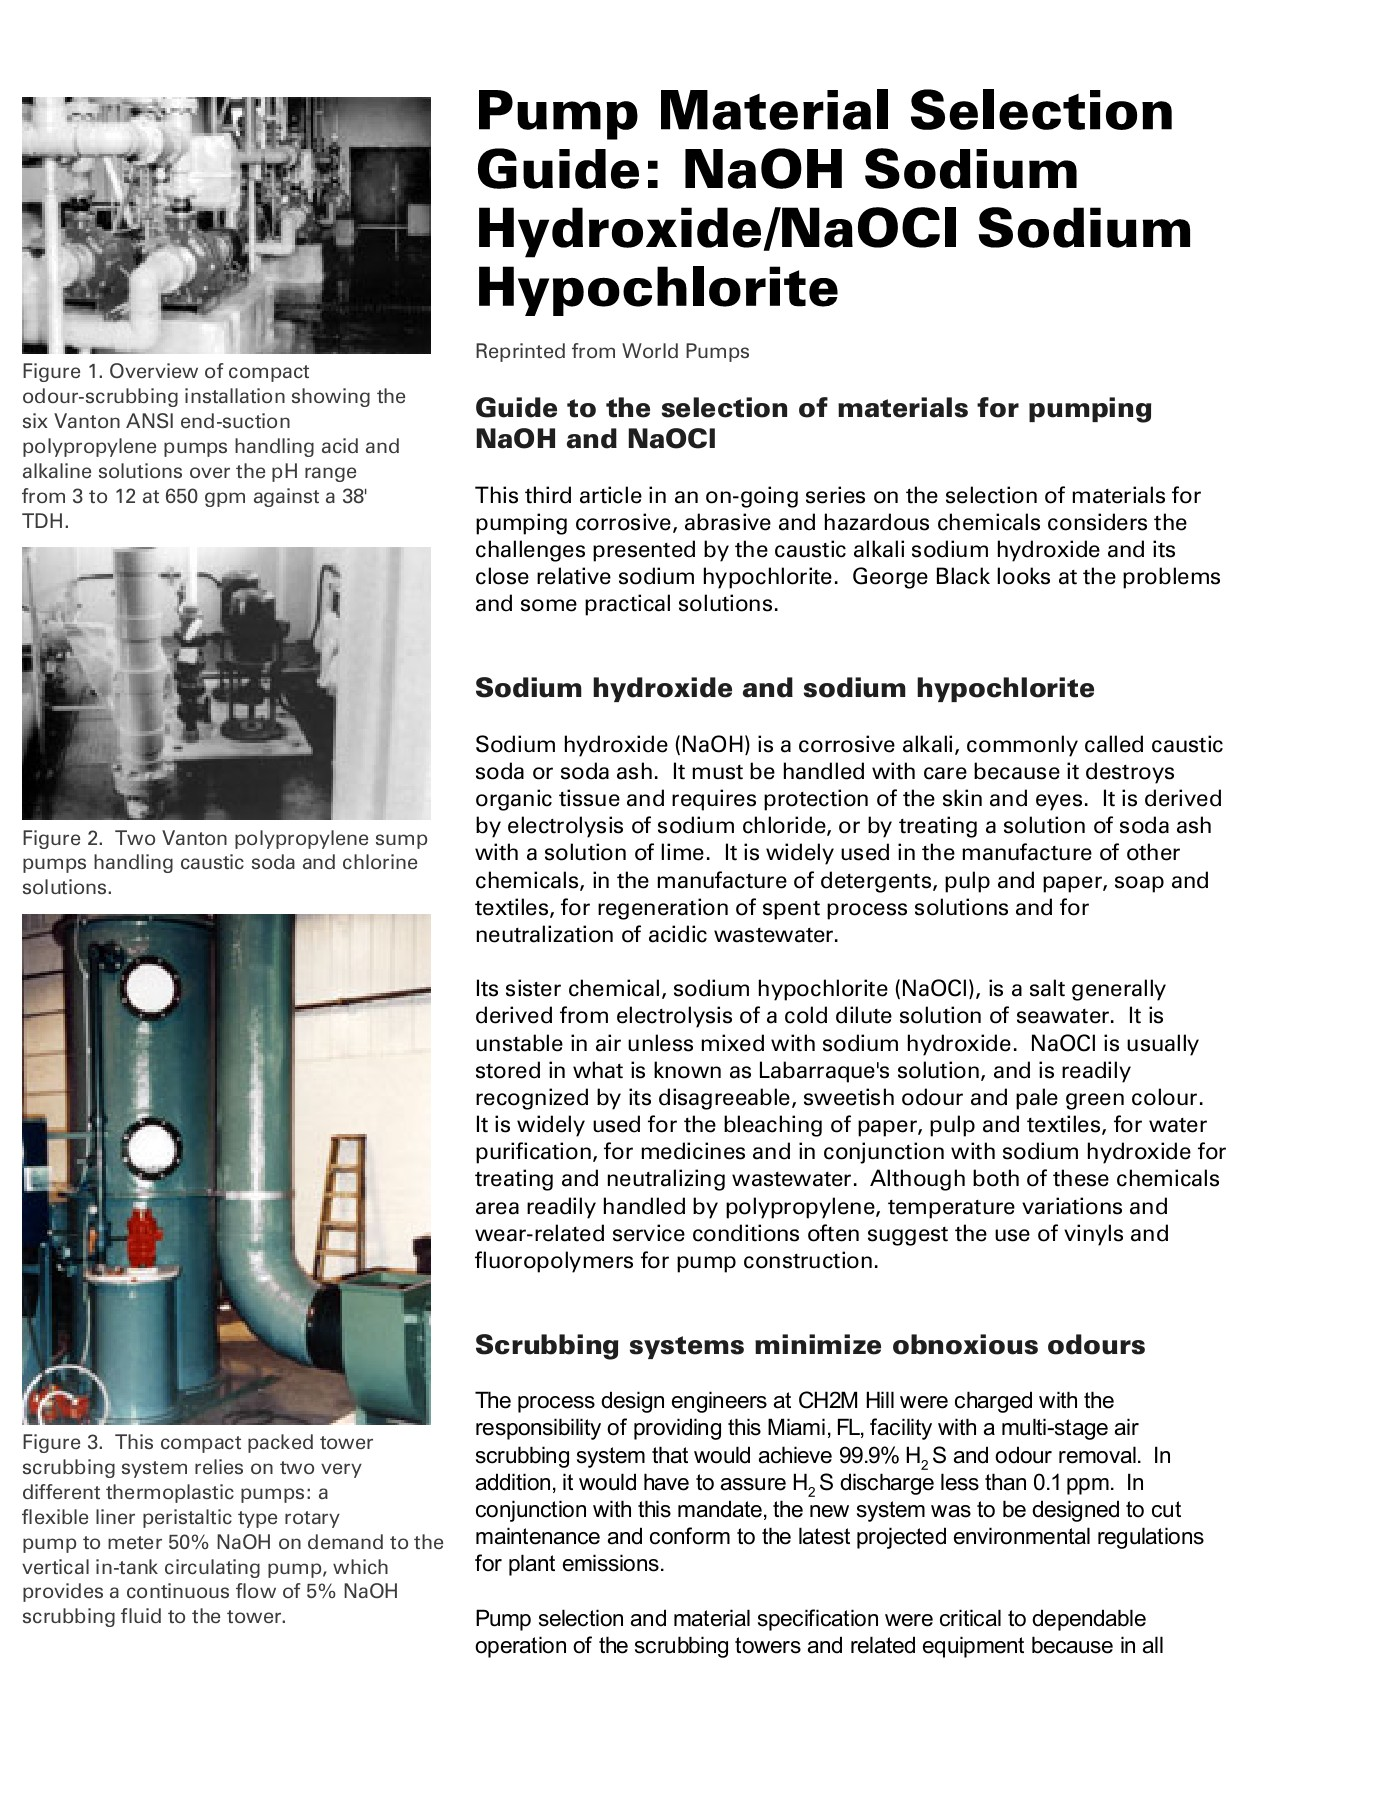 Pump Material Selection Guide: NaOH Sodium Hydroxide/NaOCl